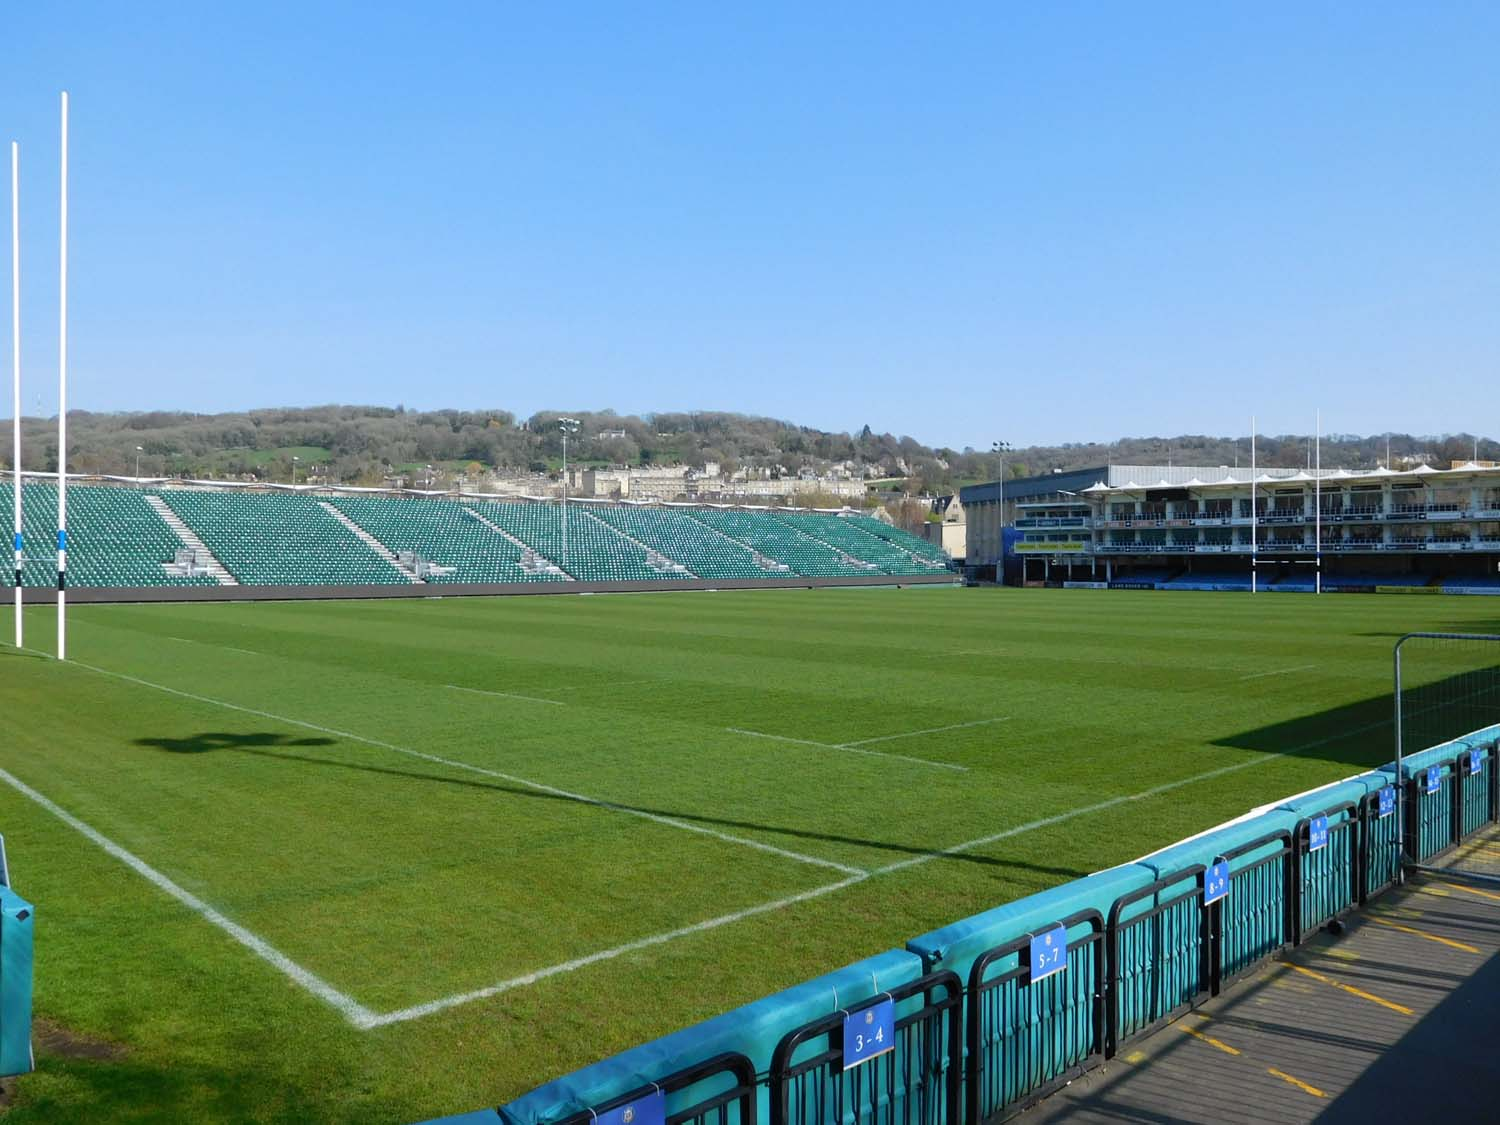 Bath Rugby field